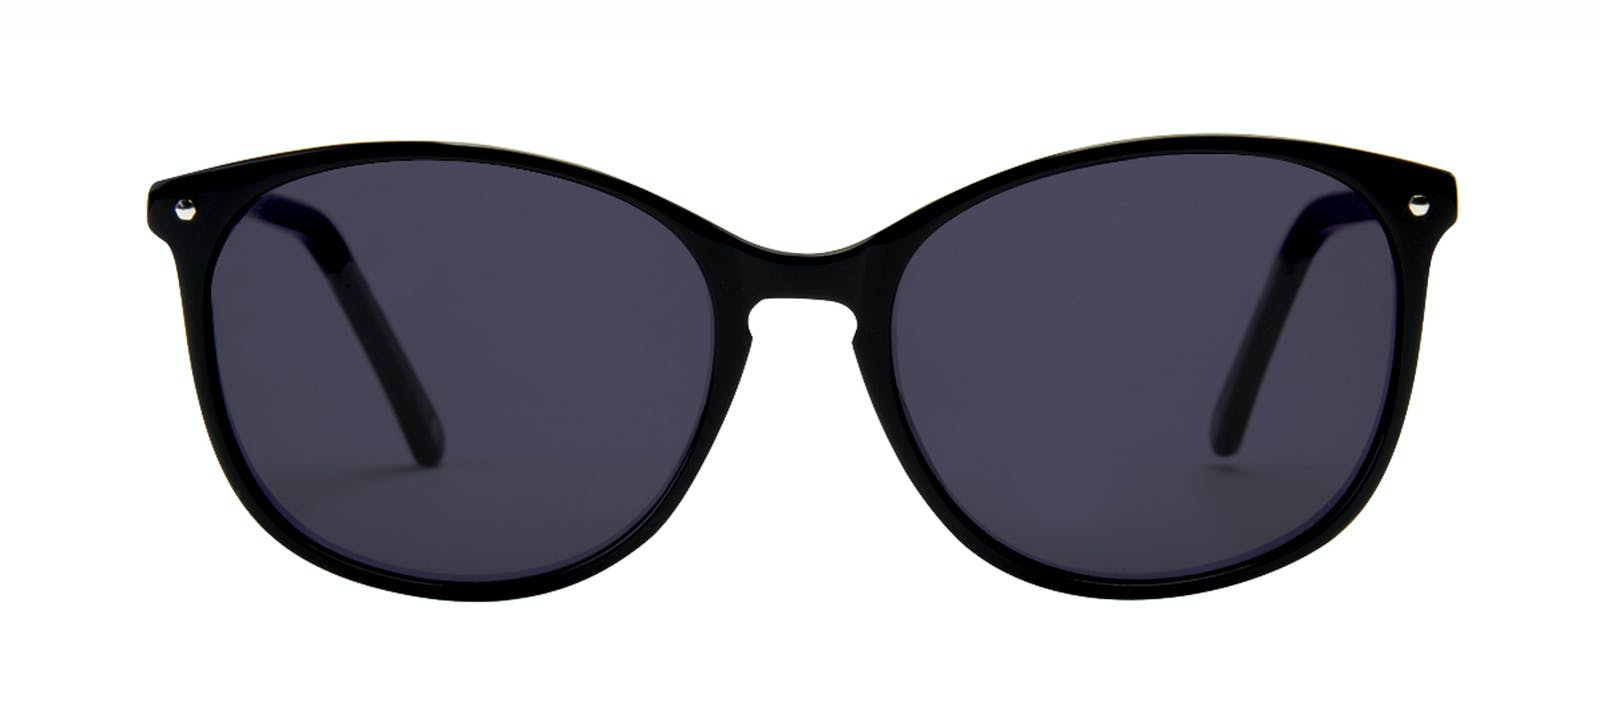 cf969d368d Affordable Fashion Glasses Rectangle Square Round Sunglasses Women Nadine  Pitch Black Front